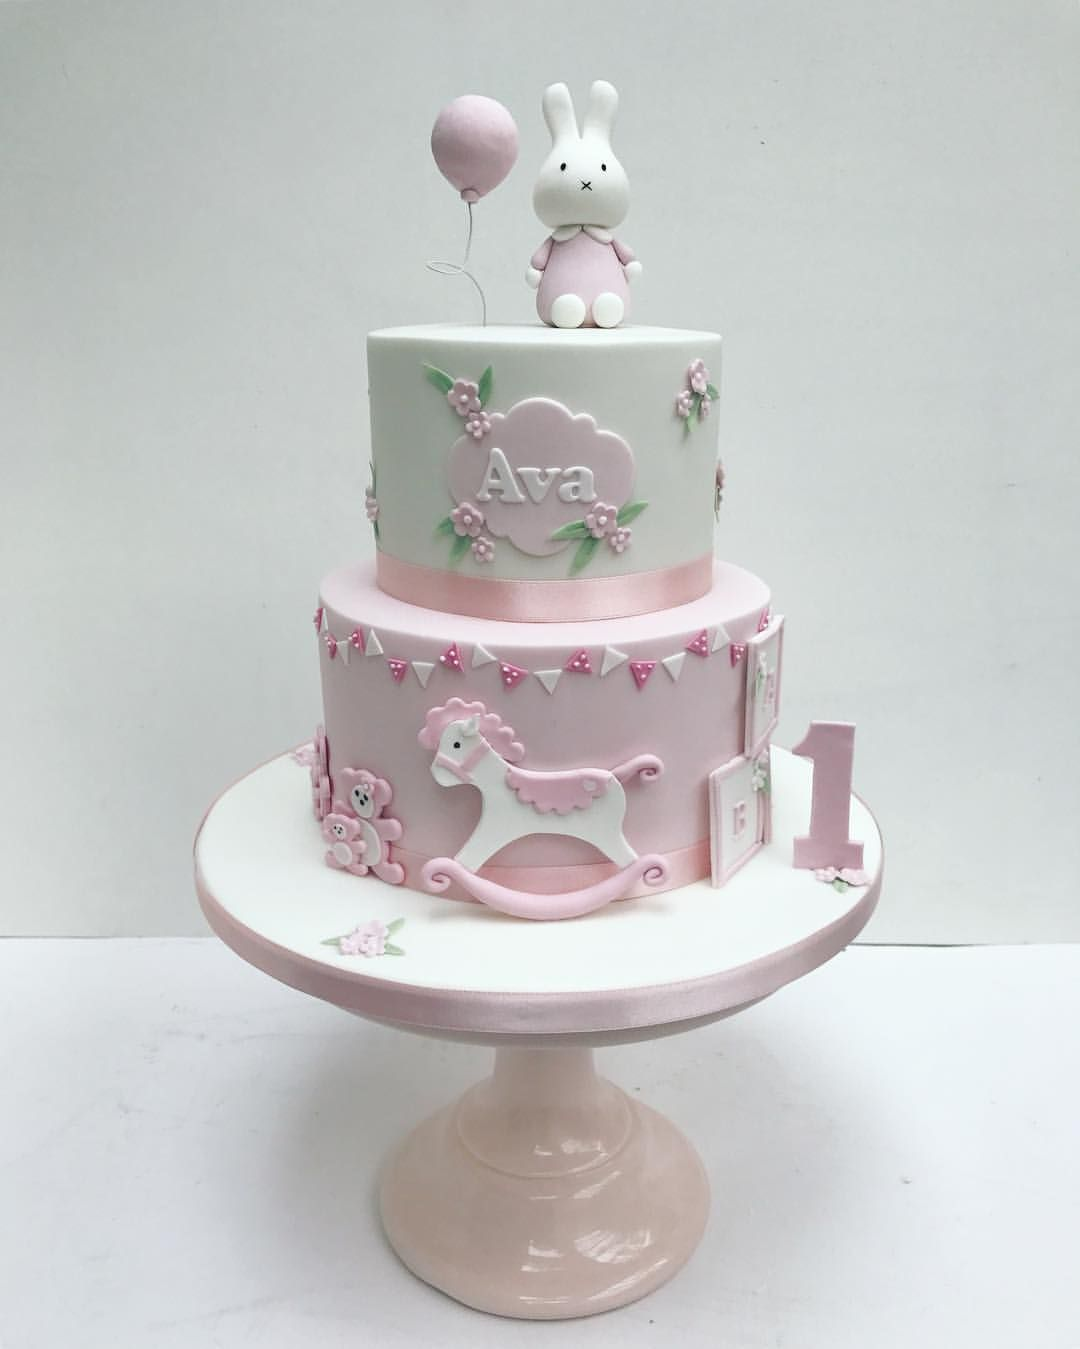 Magnificent Miffy Pink Bunny Cake For Little Girls First Birthday By Sweet Funny Birthday Cards Online Elaedamsfinfo